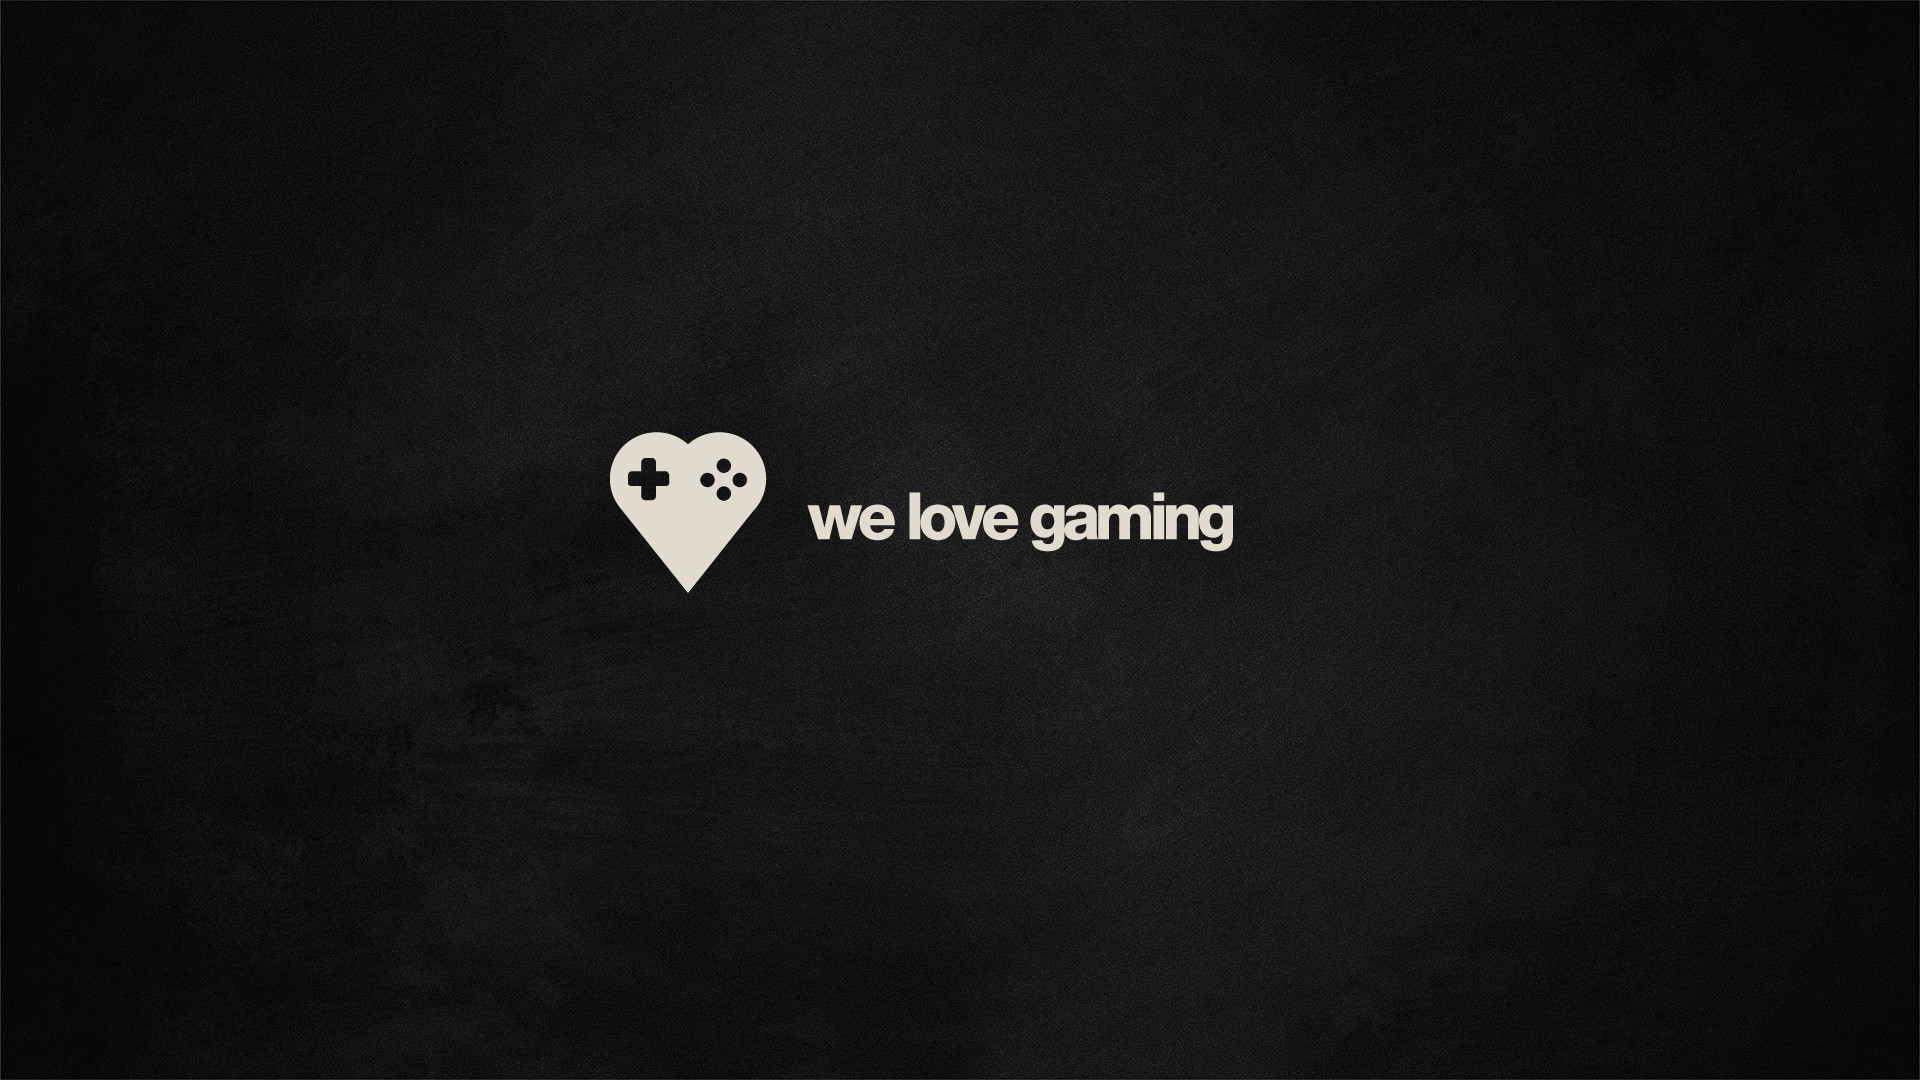 #70021379 px Gamer Wallpapers | Gamer Wallpapers Collection